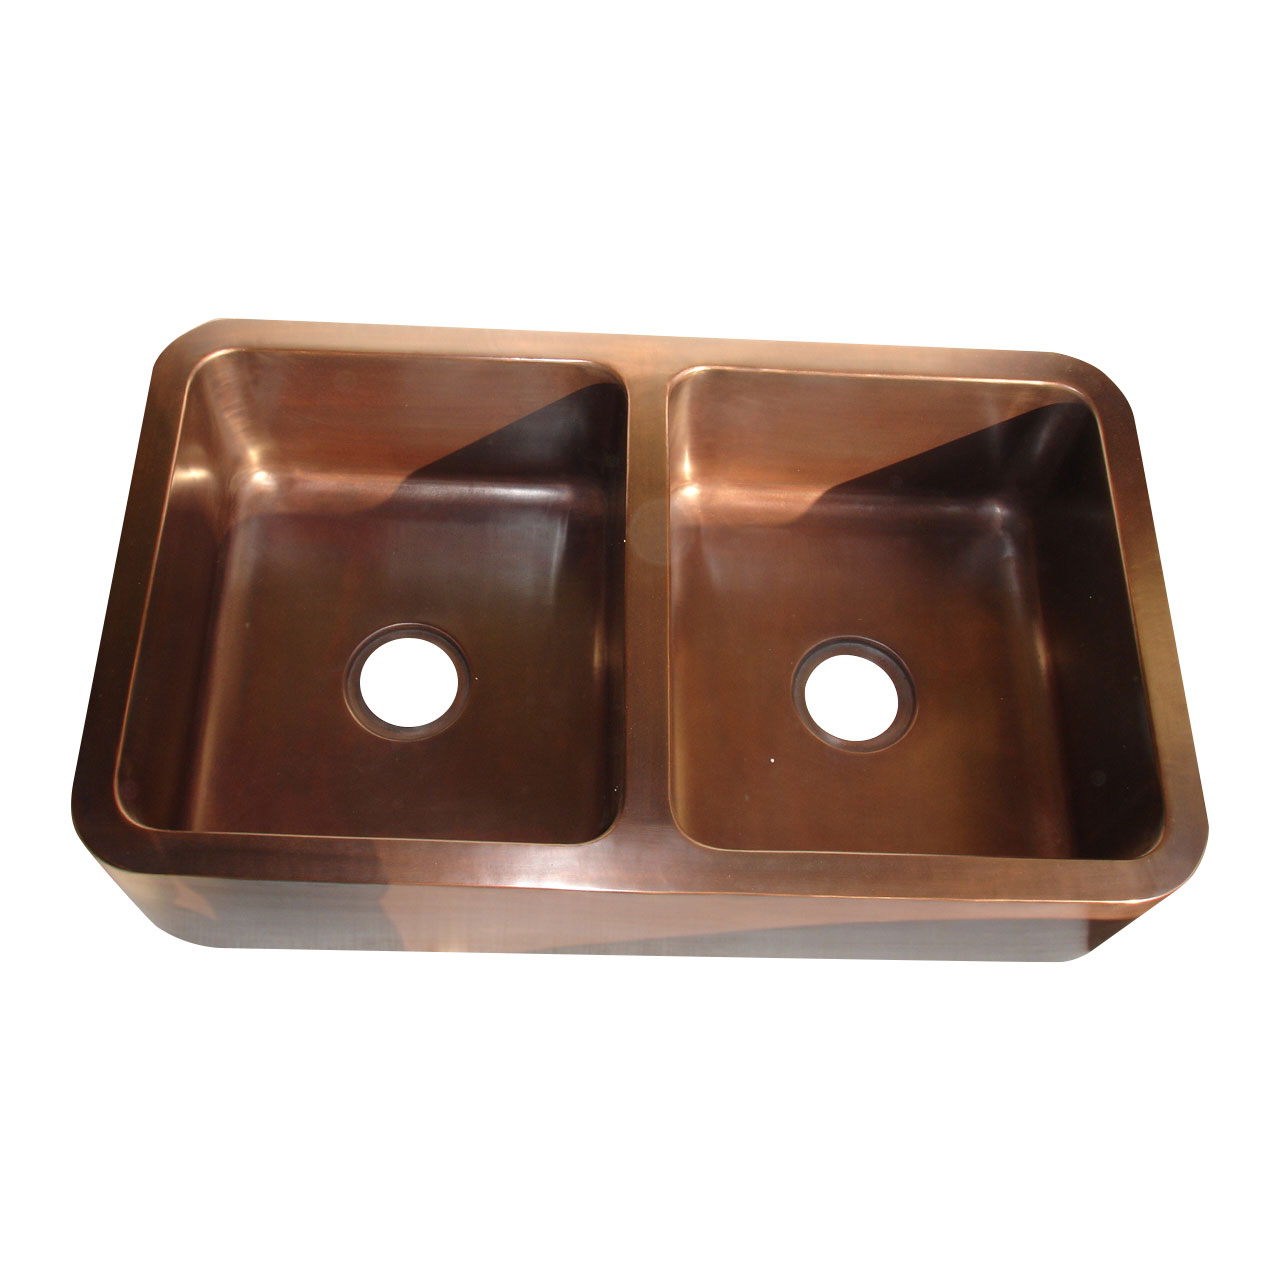 extra large kitchen sinks double bowl sink for rectangular copper coppersmith